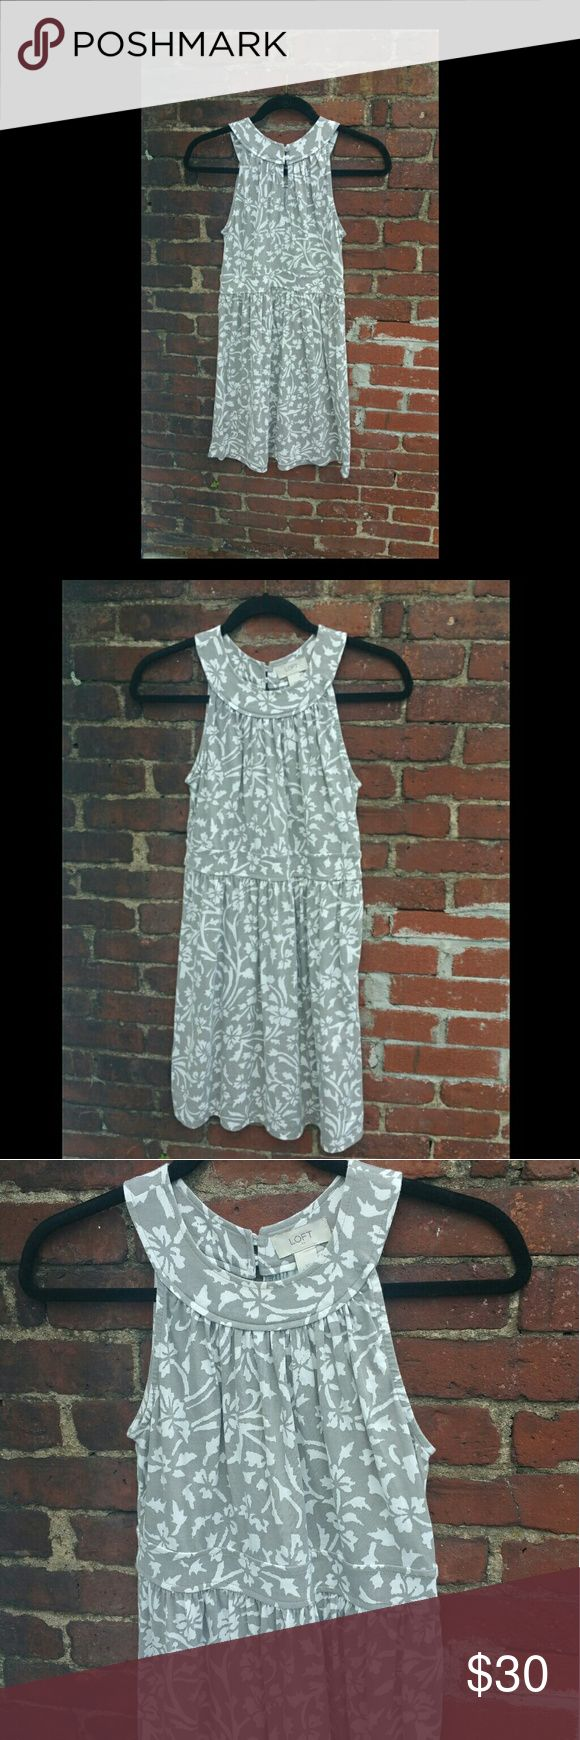 """LOFT. Womens empire waist dress Gray and white floral print LOFT empire waist, sleevless dress. With key hole back opening.  Measurements taken laying flat  Size: XS Bust? (armpit to armpit): 19"""" Waist: 15"""" Collar to hem : 33""""  See photos for details. I try to be thorough and accurate with photos and details.  CONDITION:  Preowned. Very Gently Used Condition. No holes, rips, tears, or stains LOFT Dresses Midi"""